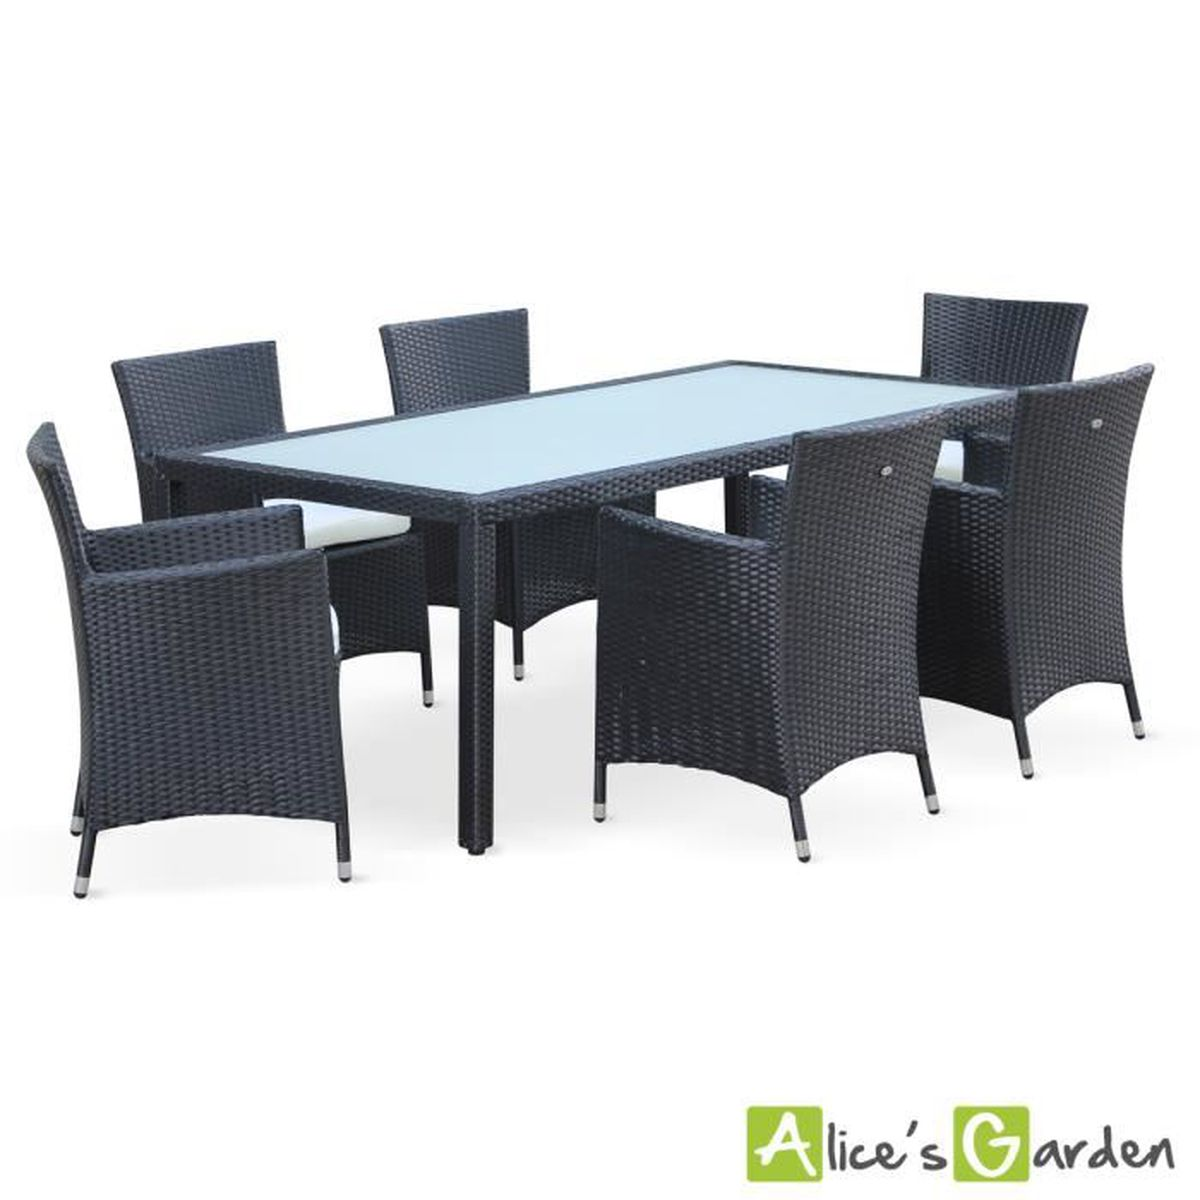 Arezzo table de jardin r sine tress e 6 places achat - Salon de jardin resine 6 places ...